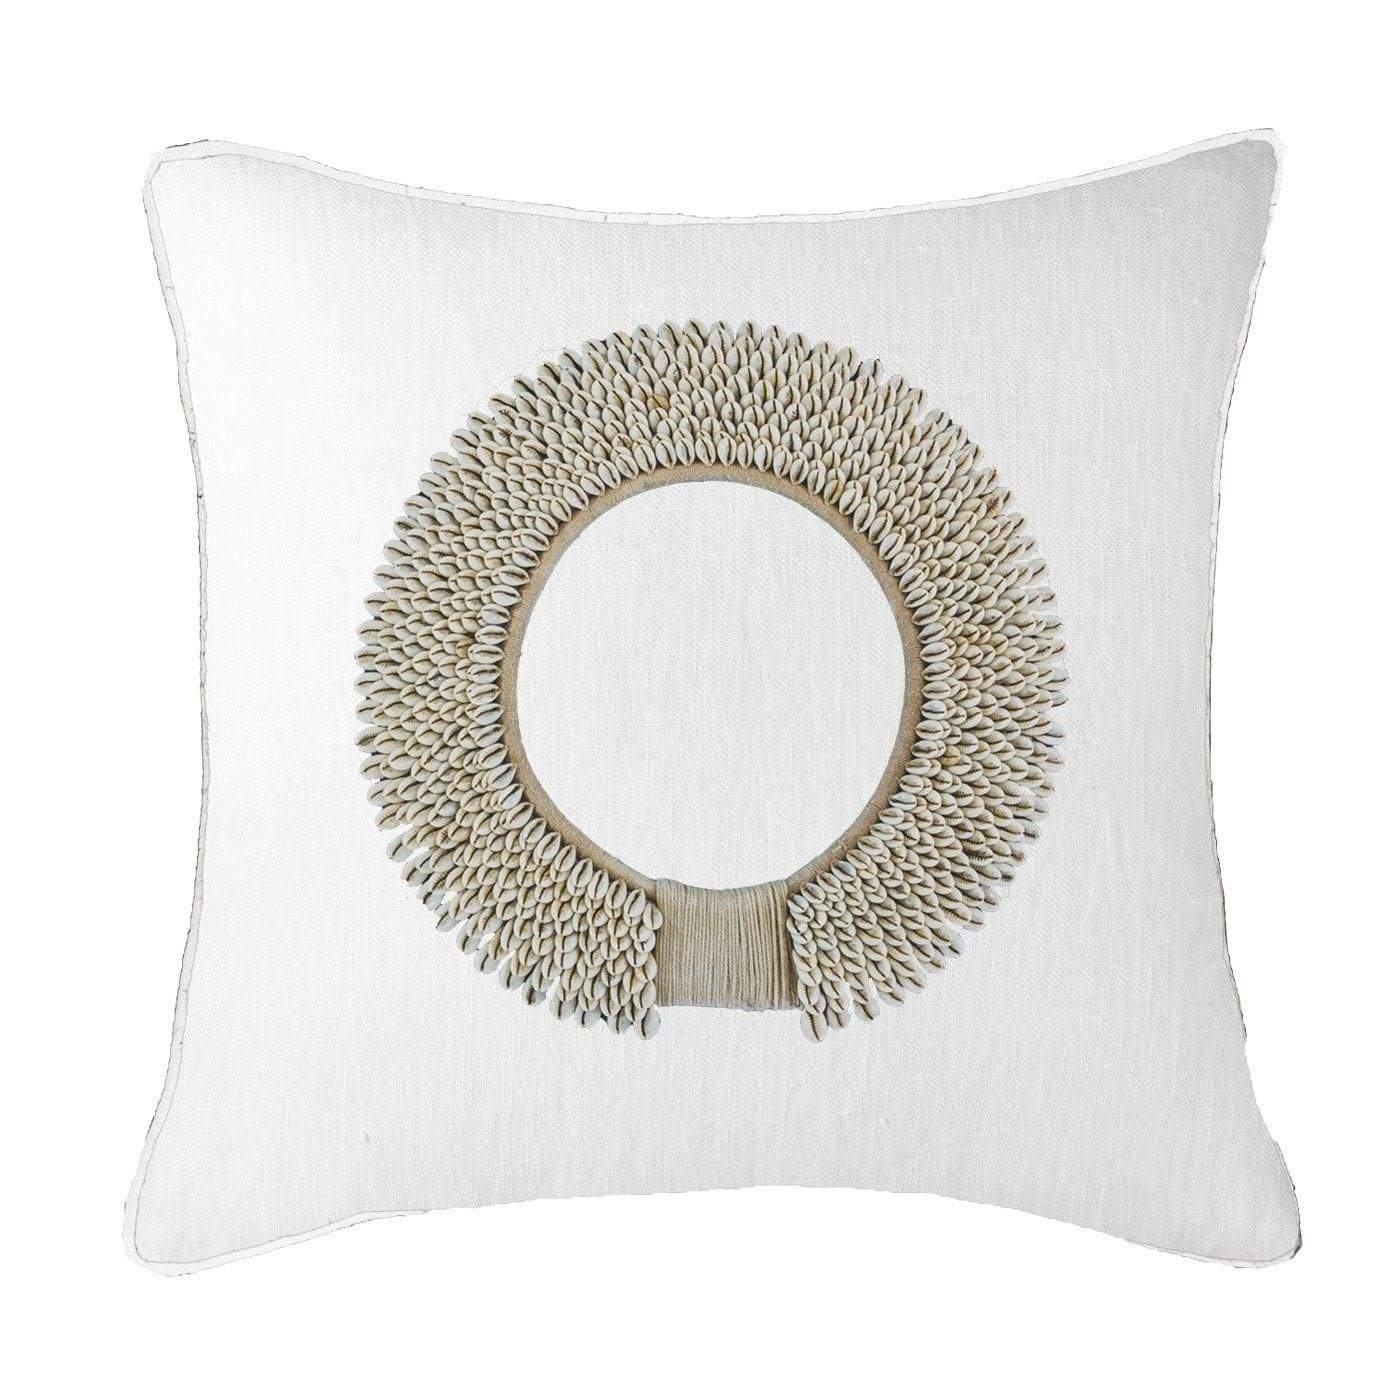 Bandhini Homewear Design Lounge Cushion Linen / Surf Tribe / 22 x 22 Shell Ring White Lounge Cushion 55 x 55 cm